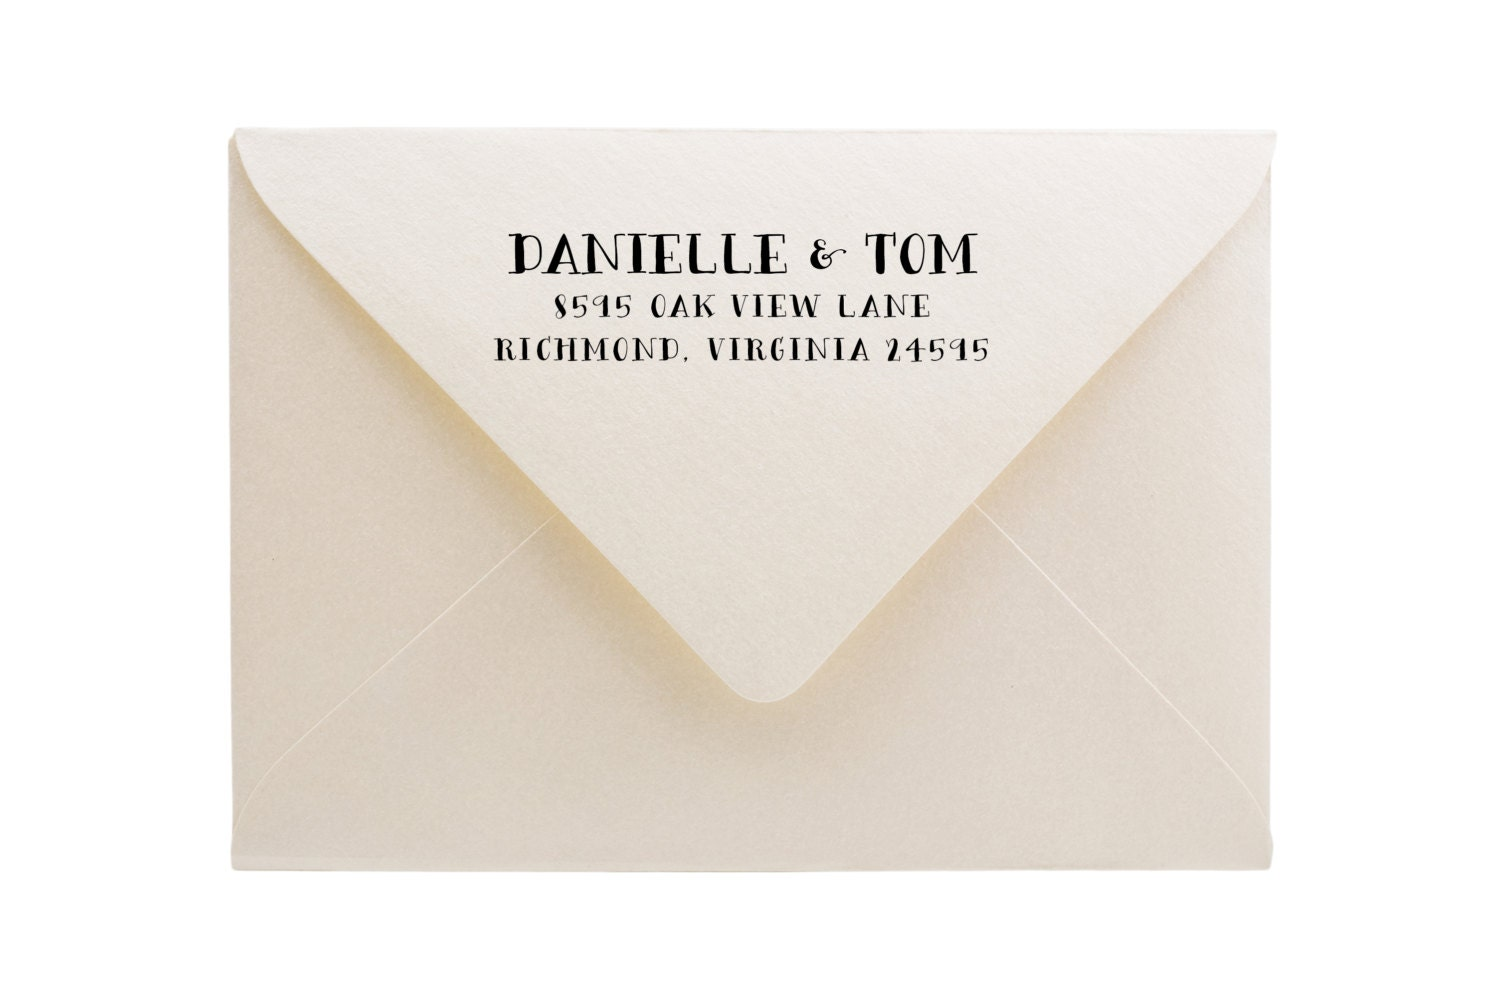 Personalized Stamps For Wedding Invitations: Wedding Stamp Custom Return Address Stamp Wedding Invitation